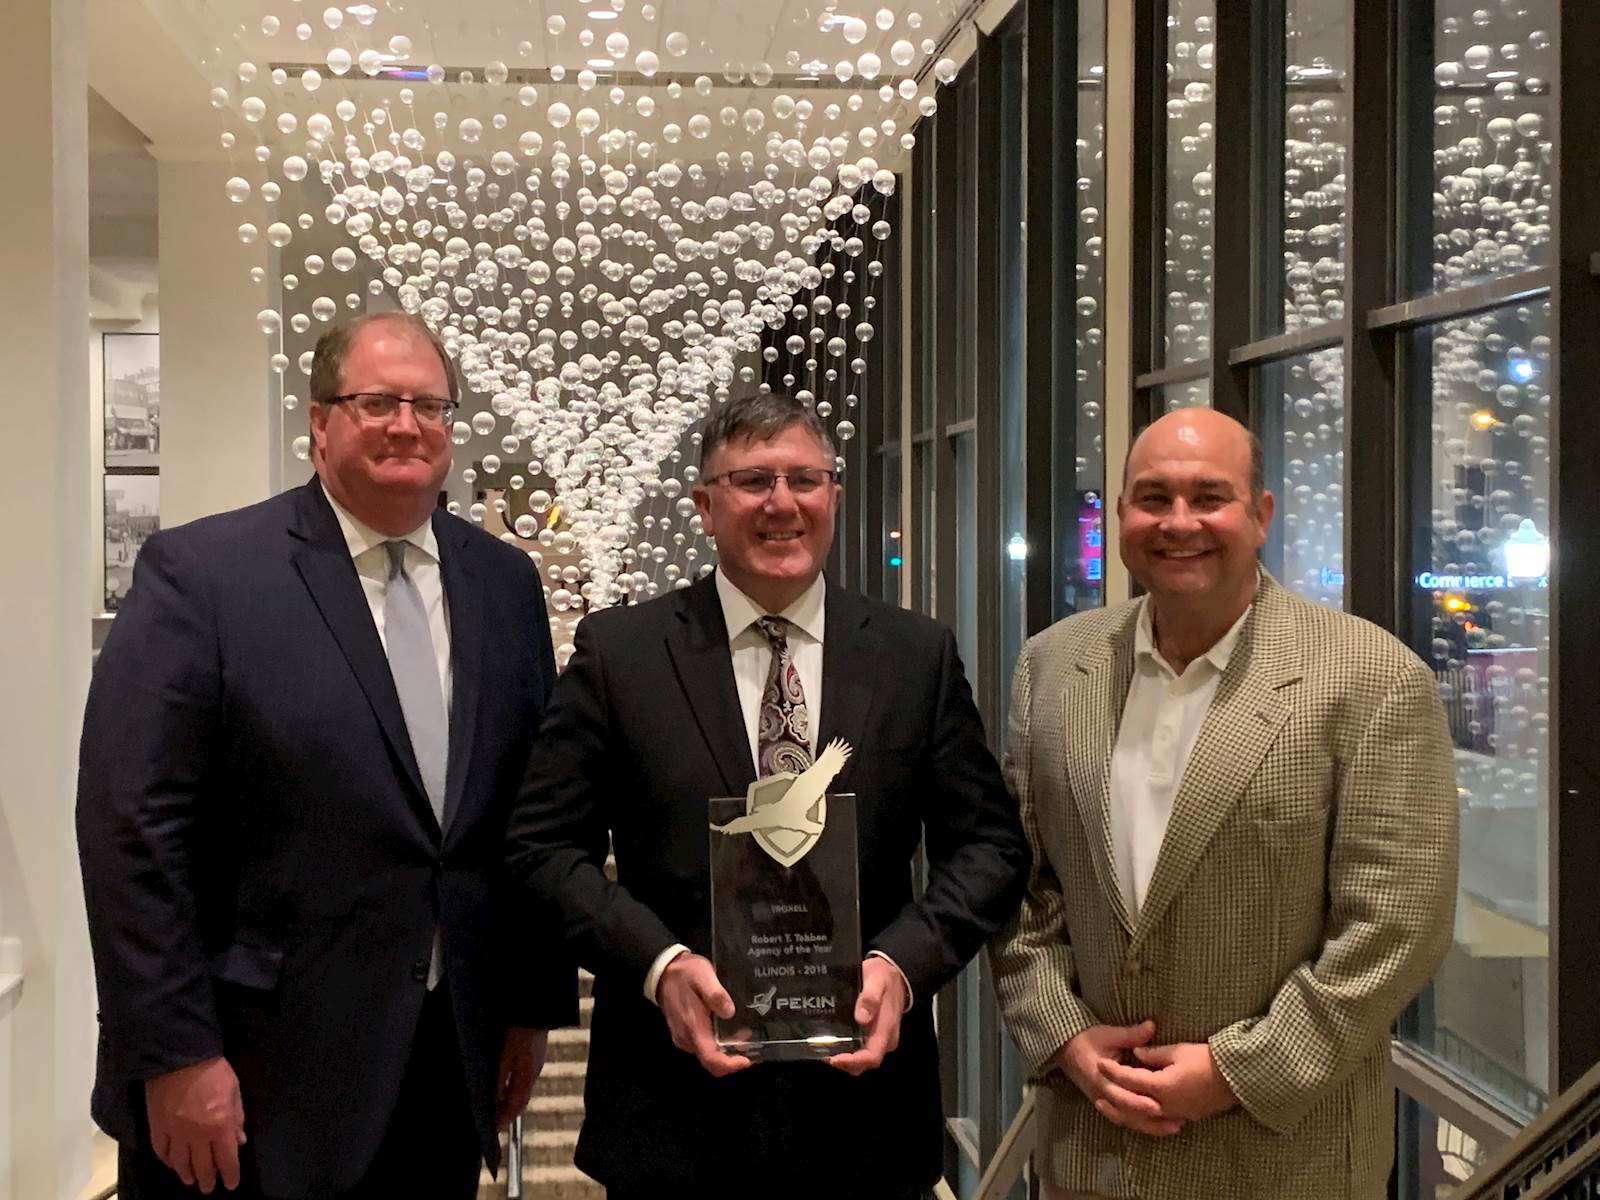 John Eck, Jr., Chris Leming, Todd Sowle Pekin Insurance Award Recipient